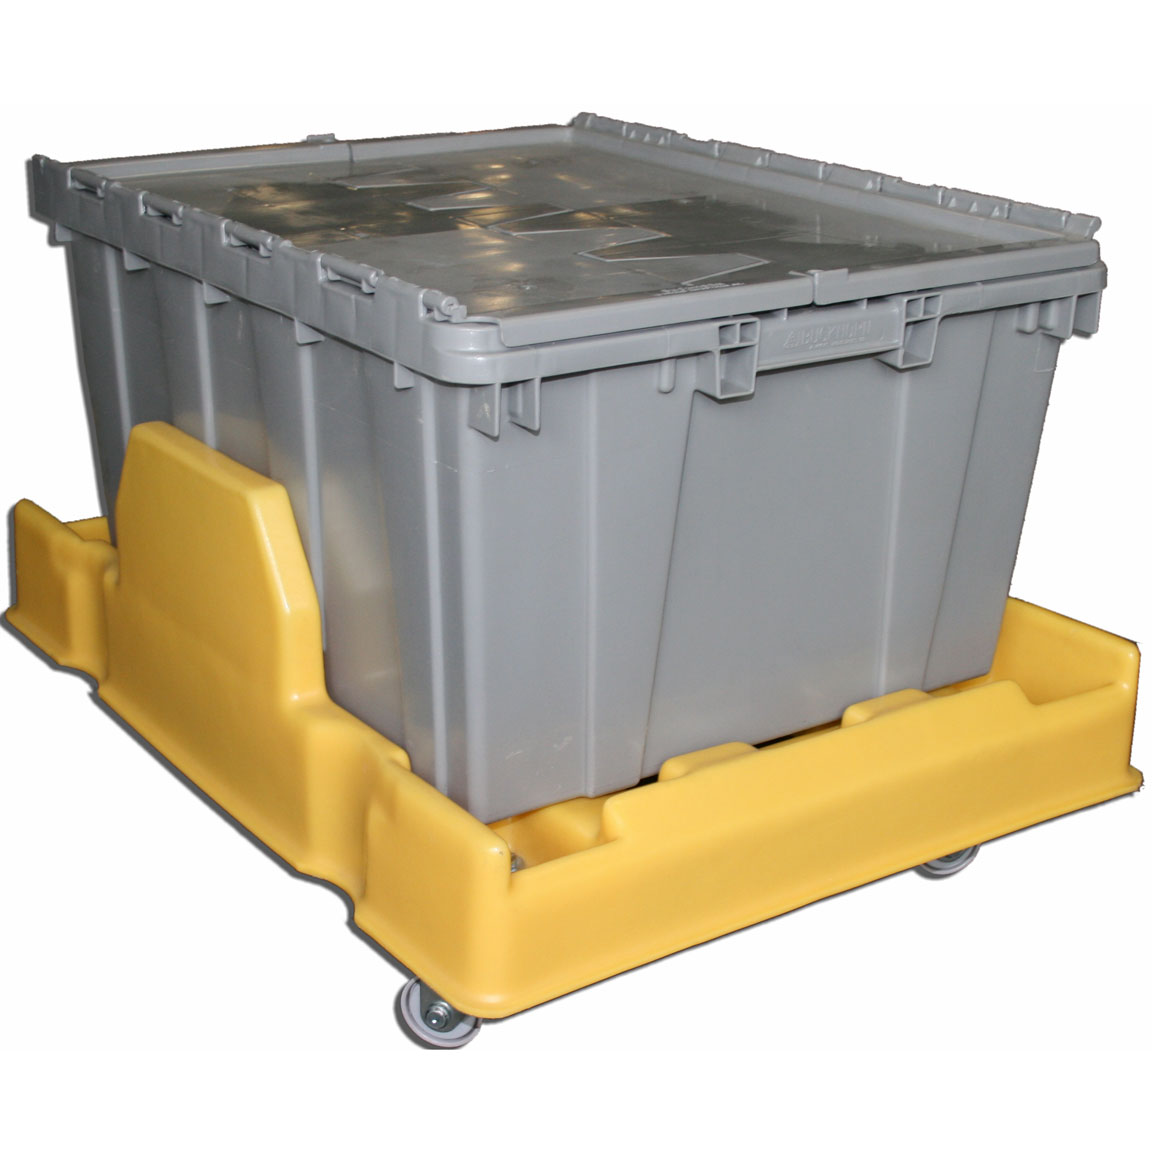 DOL-2420 - DOL Series Plastic Dolly for 24 x 20 Attached Lid Container - 24 x 20